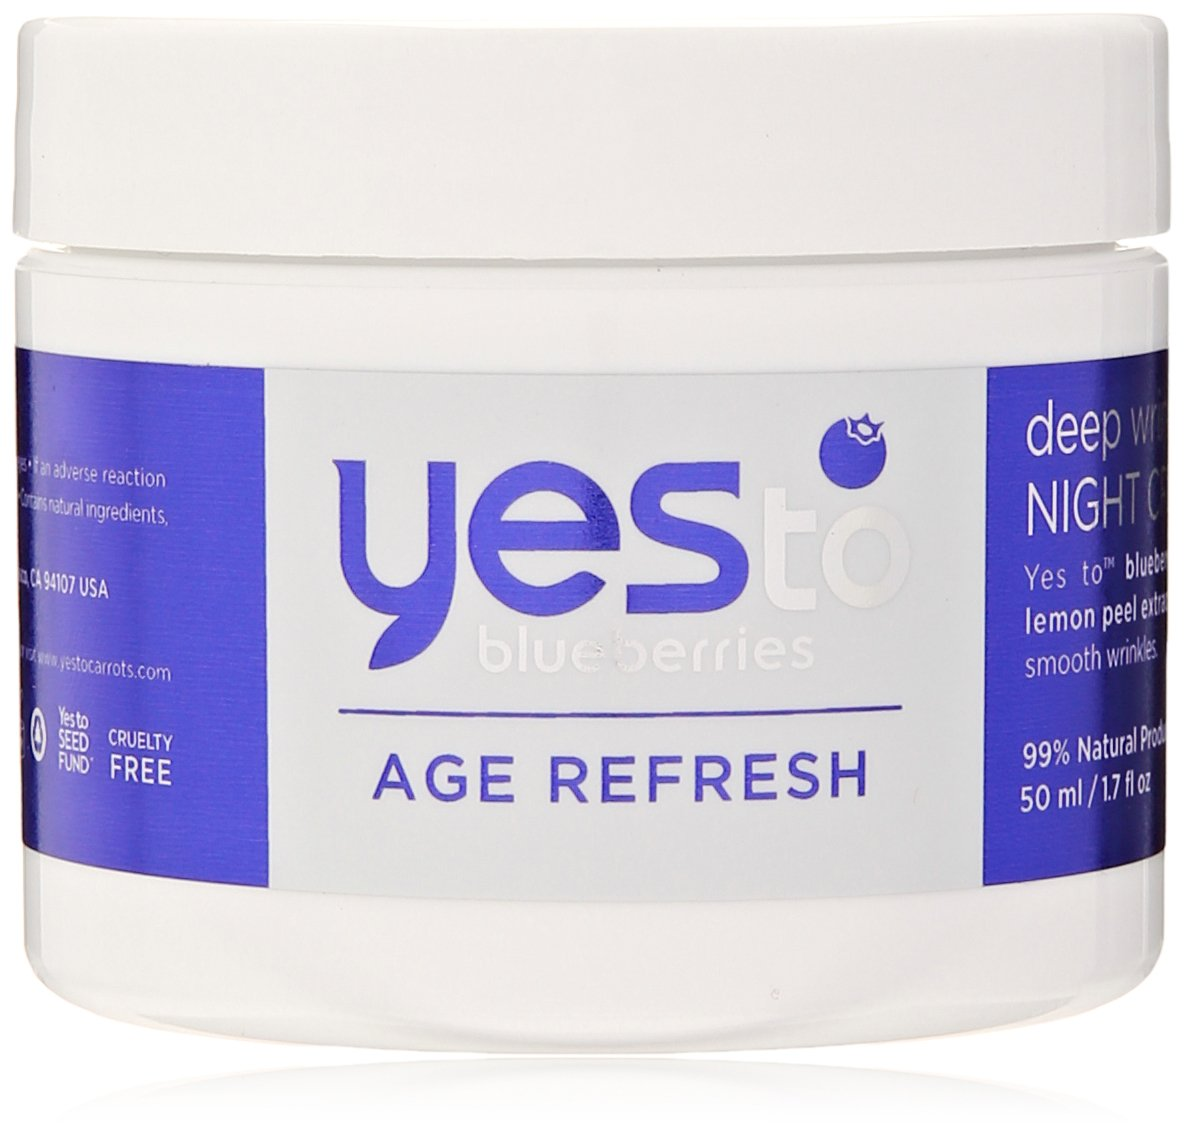 Yes To Blueberries Age Refresh Deep Wrinkle Night Cream, 1.7 Ounce 7311104